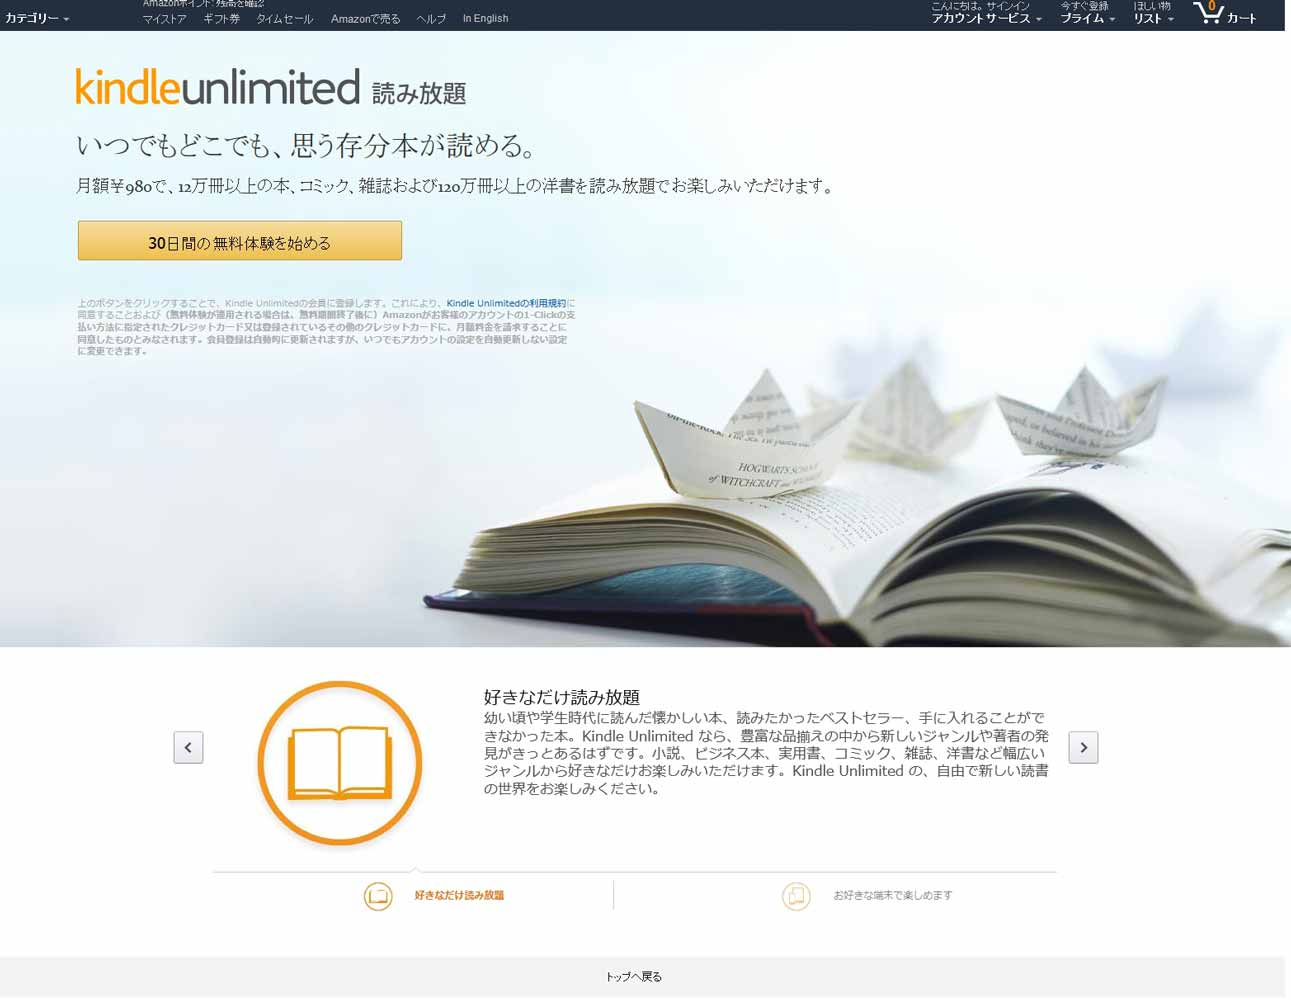 Amazon、日本で定額読み放題サービス「Kindle Unlimited」の提供を開始 – 月額980円